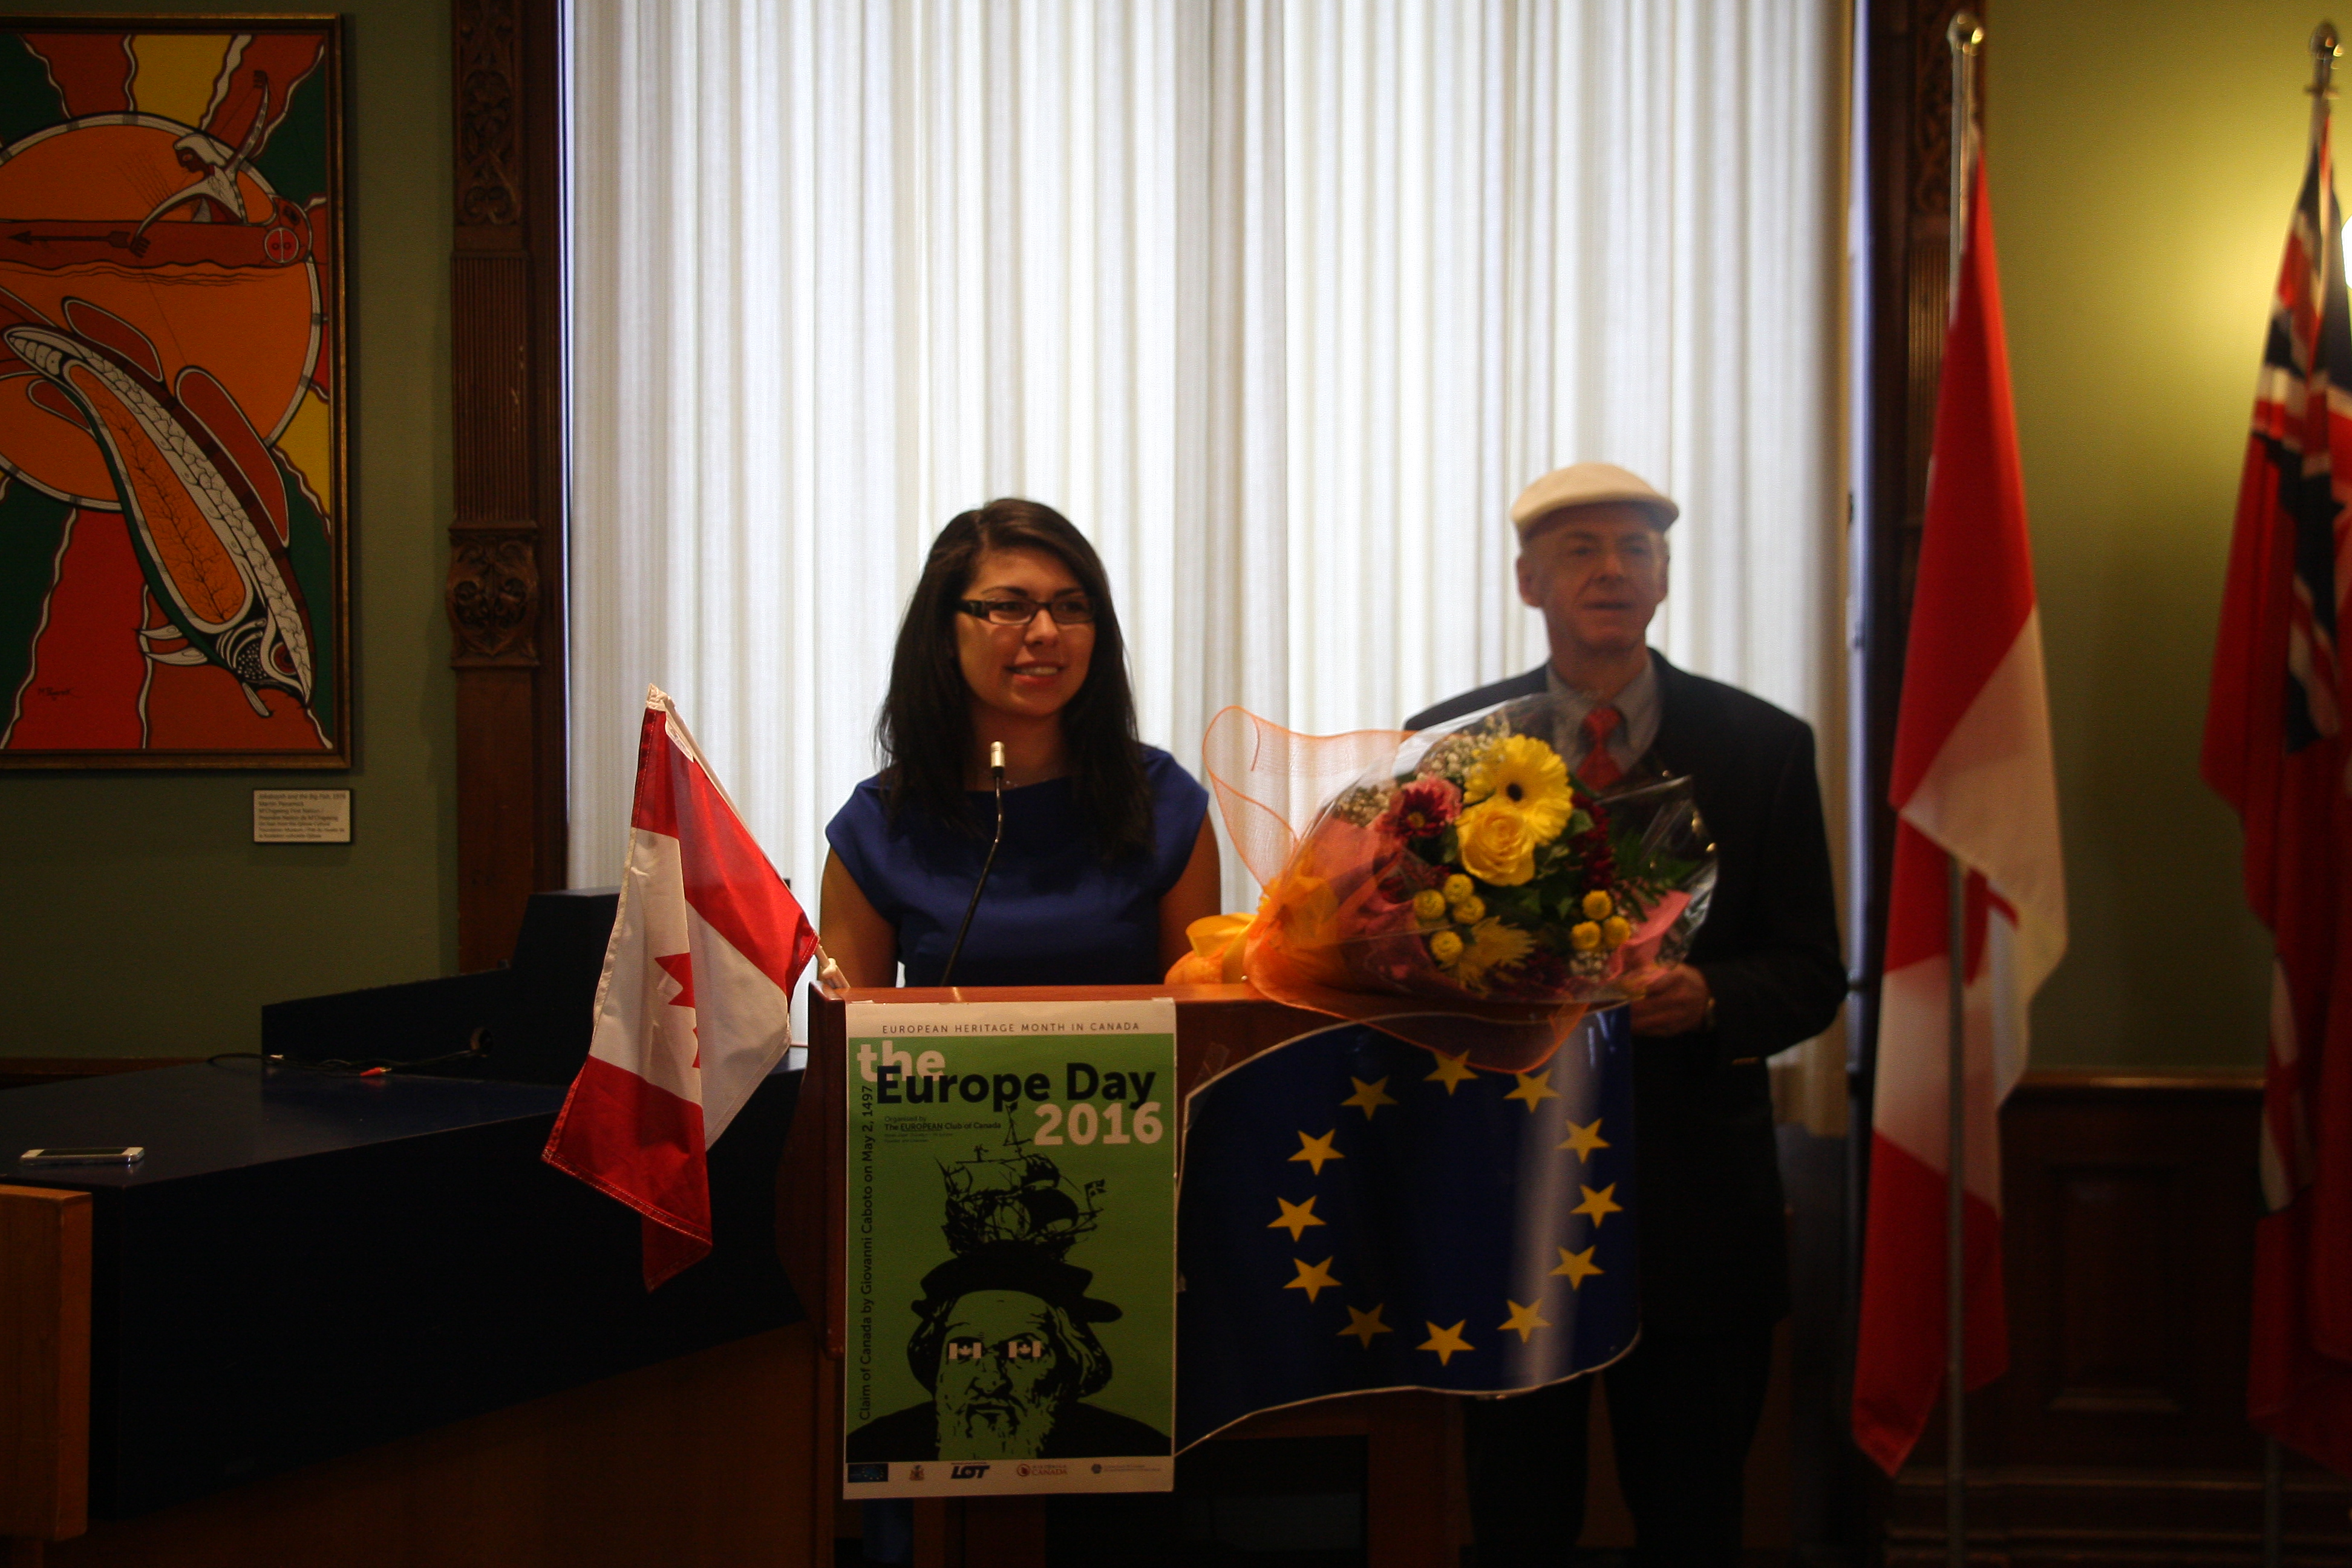 Europe_Day_Violette_Goldyn_Moussouni_Tony_Ruprecht_May_2_2016_Queens_Park_European_Club_Canada_Goldyn_Foto_IMG_8655